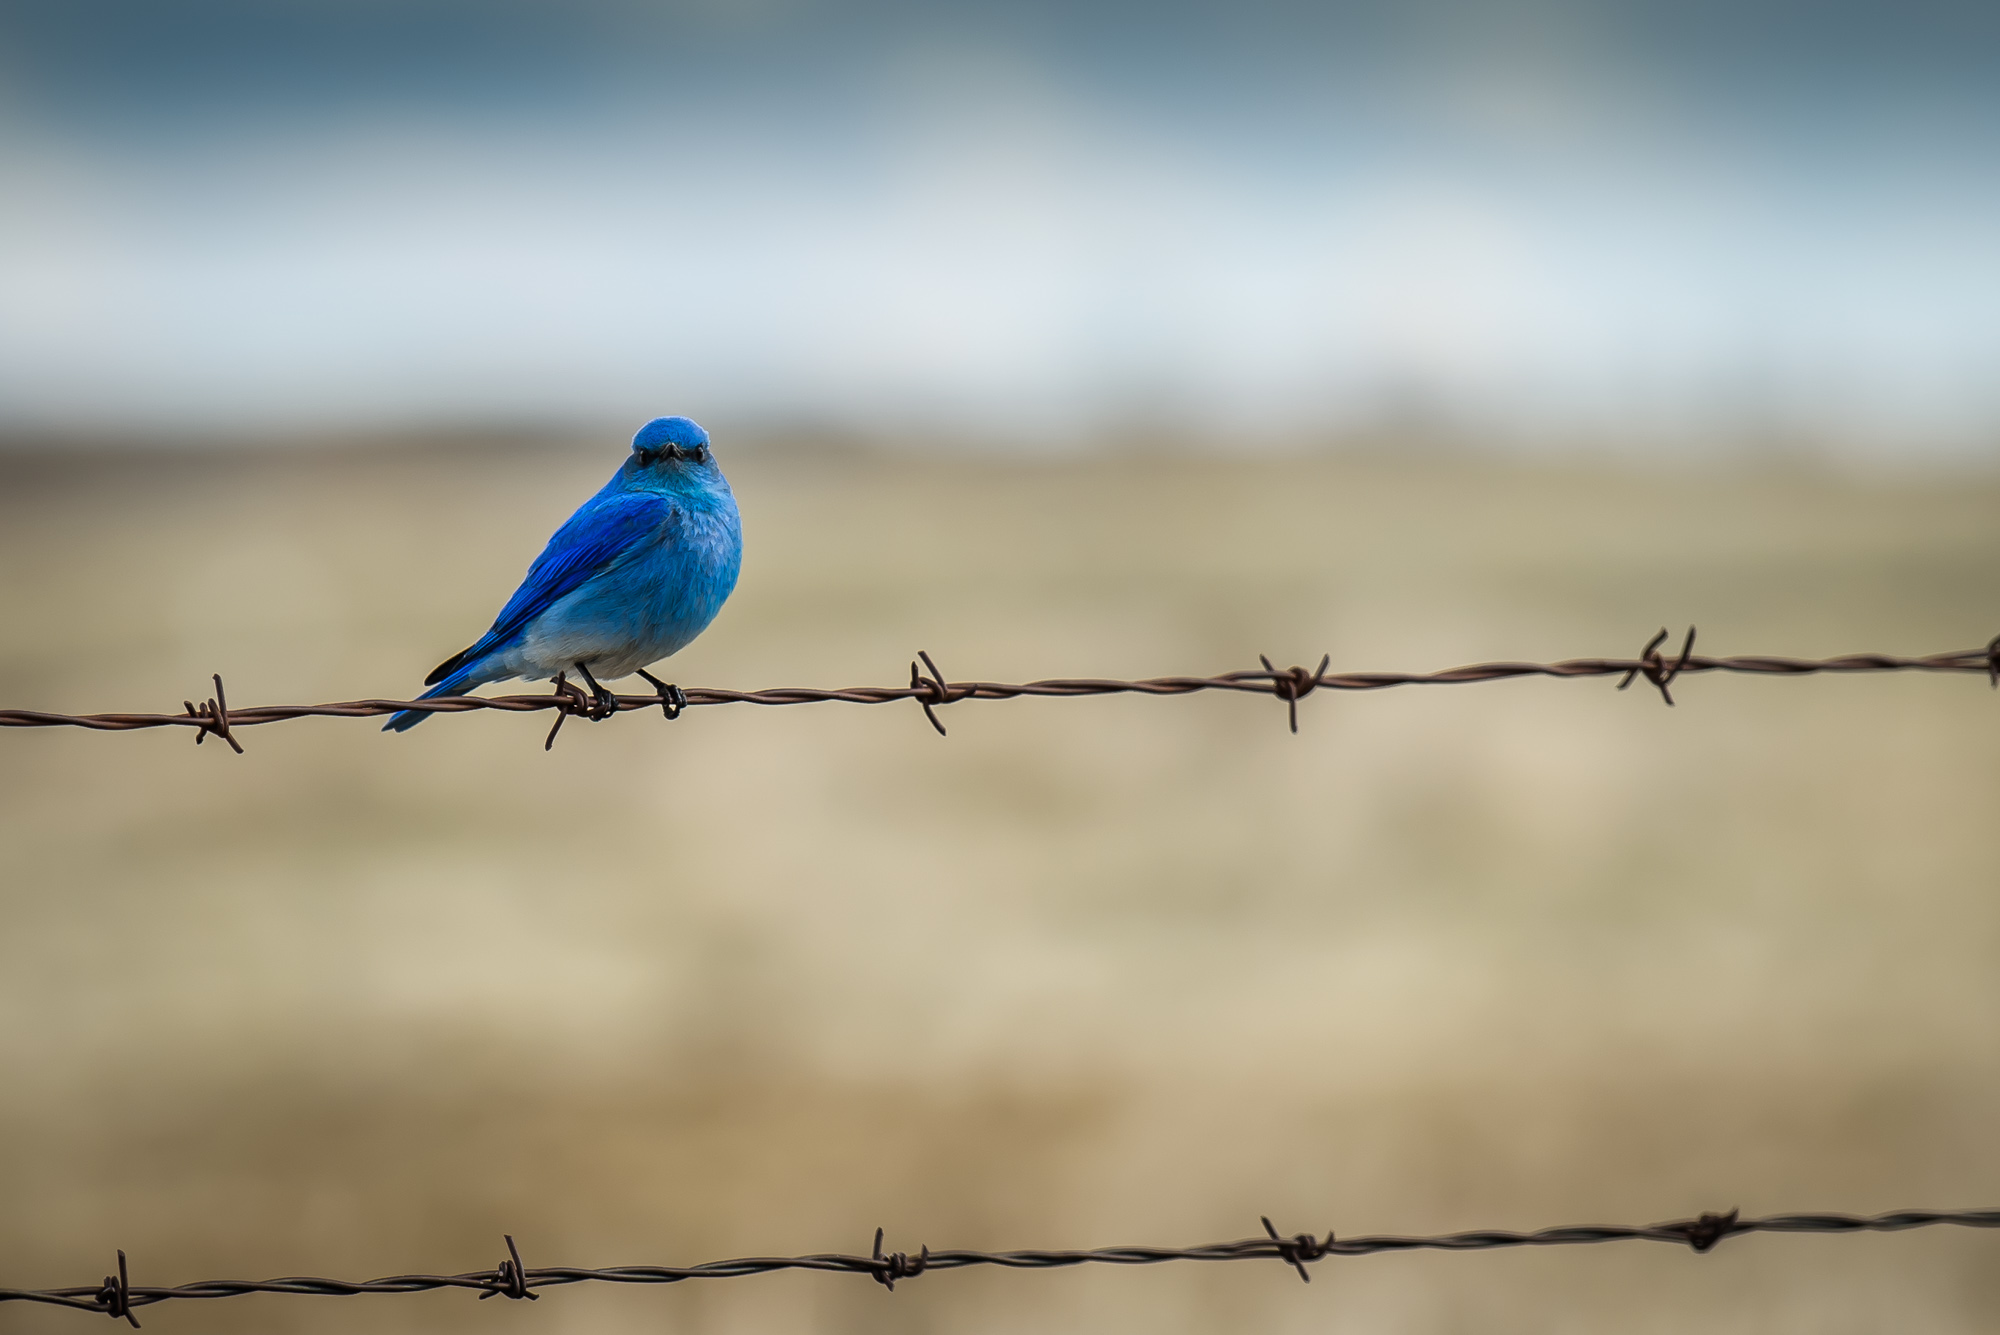 Rocky Mountain Bluebird - male